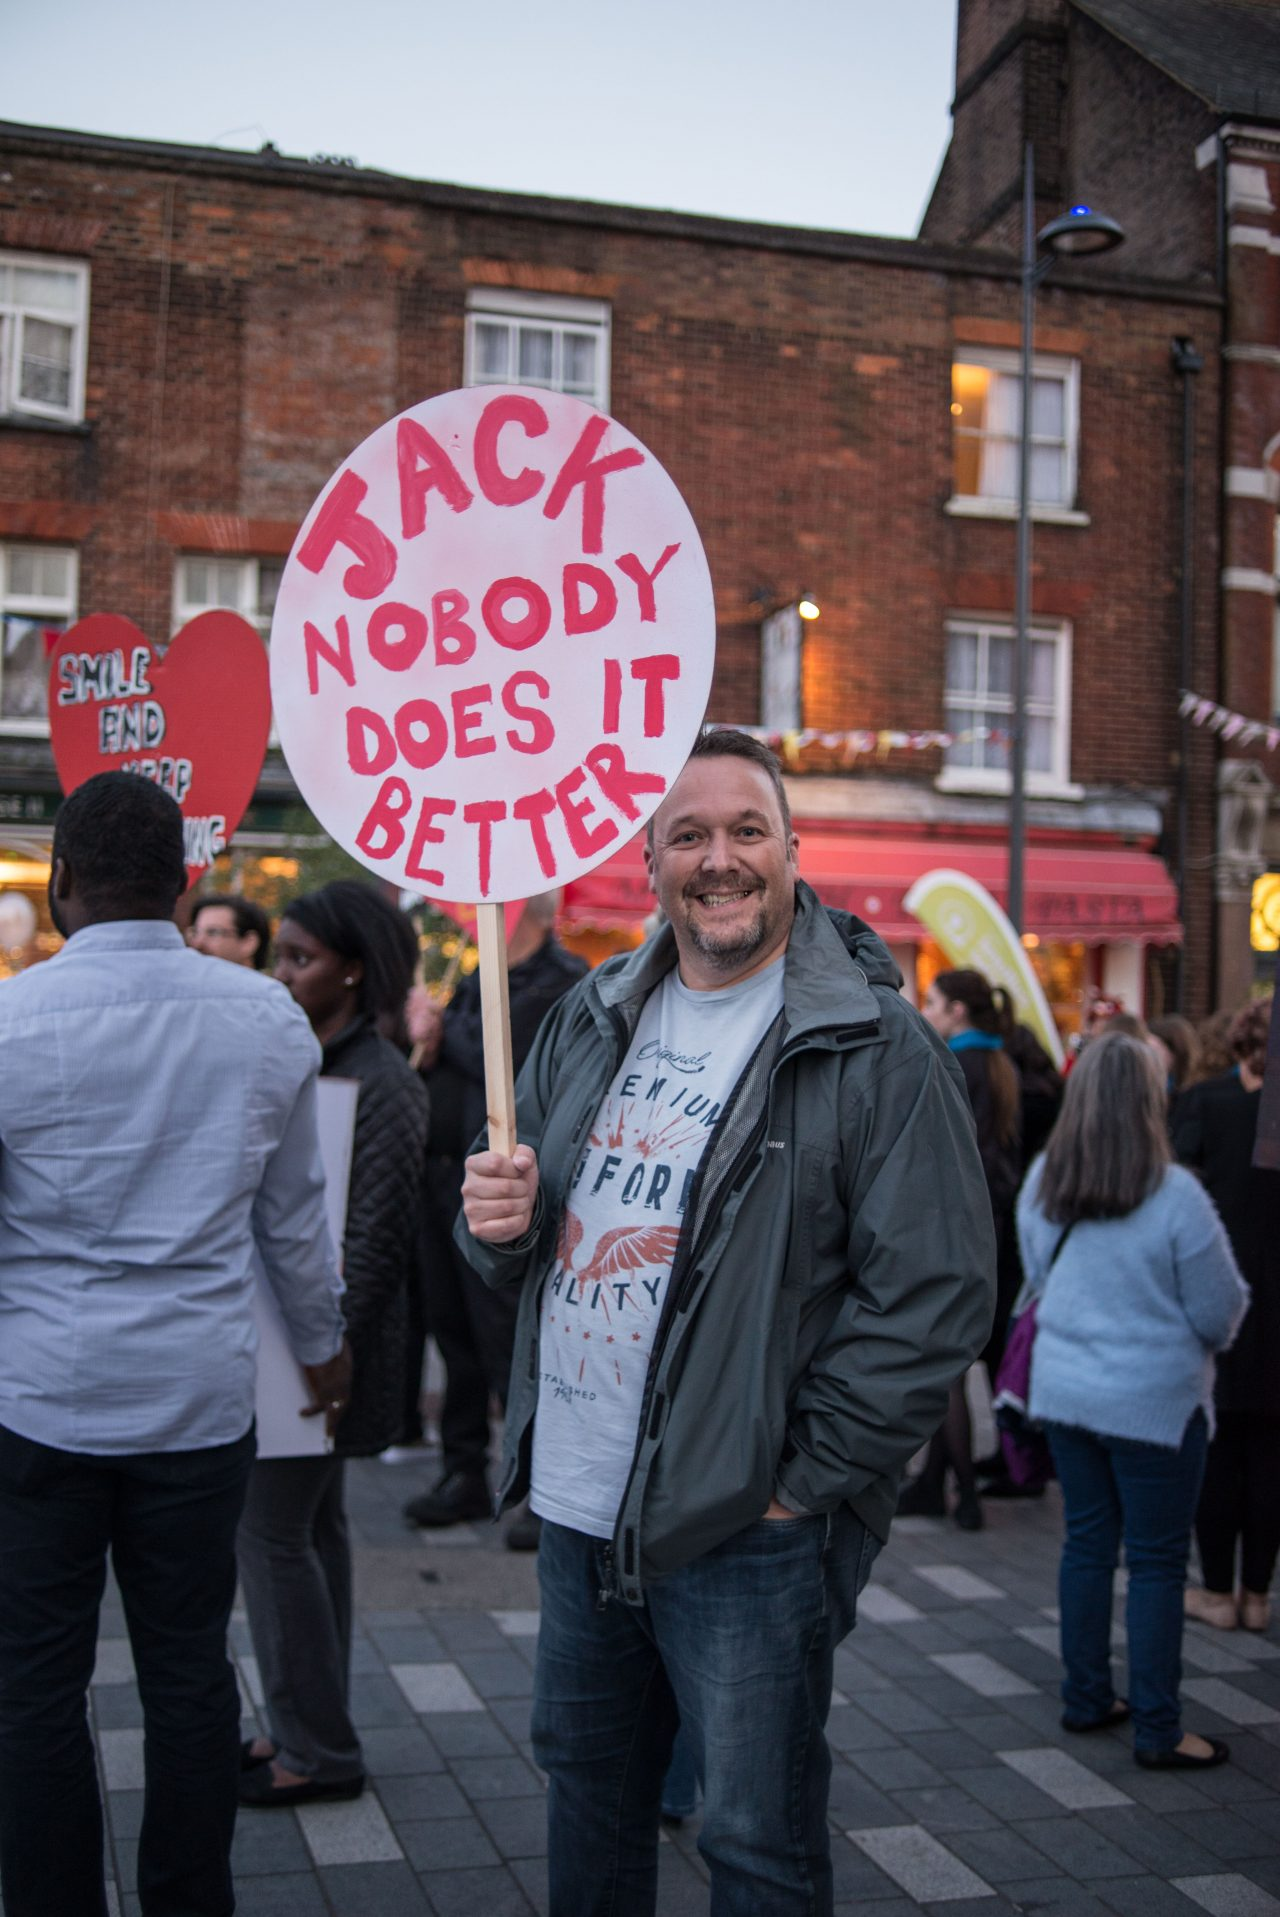 A man looking merry, holding a round placard saying 'Jack Nobody Does It Better' as part of Scott King's 'Keep The Home Fires Burning.'